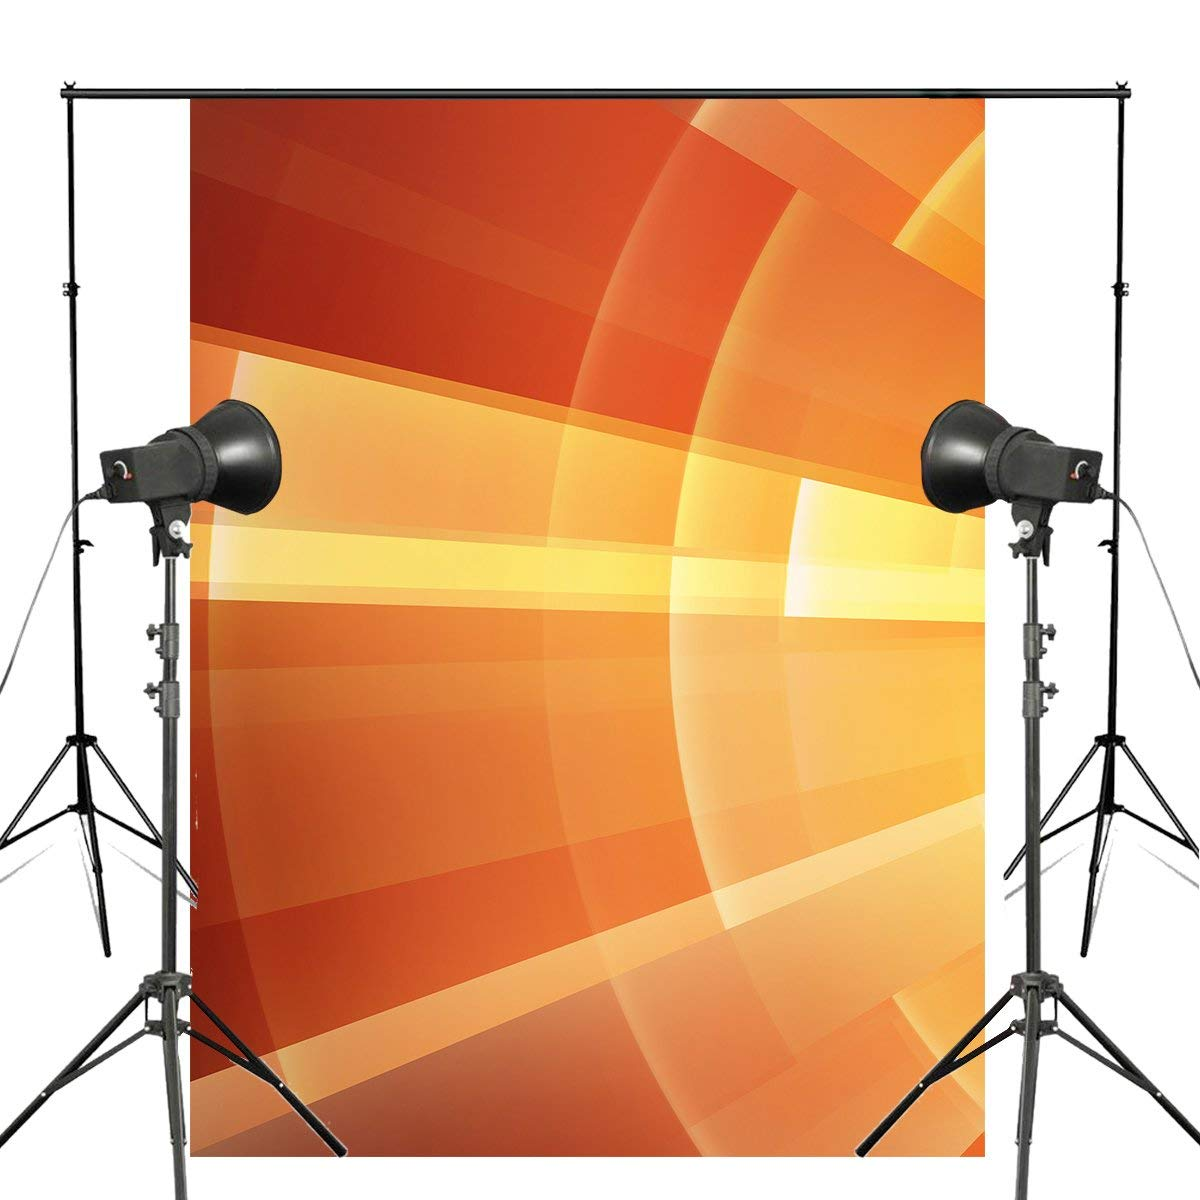 Abstract Art Background Photography Shining Backdrops For Picture Photo Studio Orange Background Props 5x7ft-in Photo Studio Accessories from Consumer Electronics